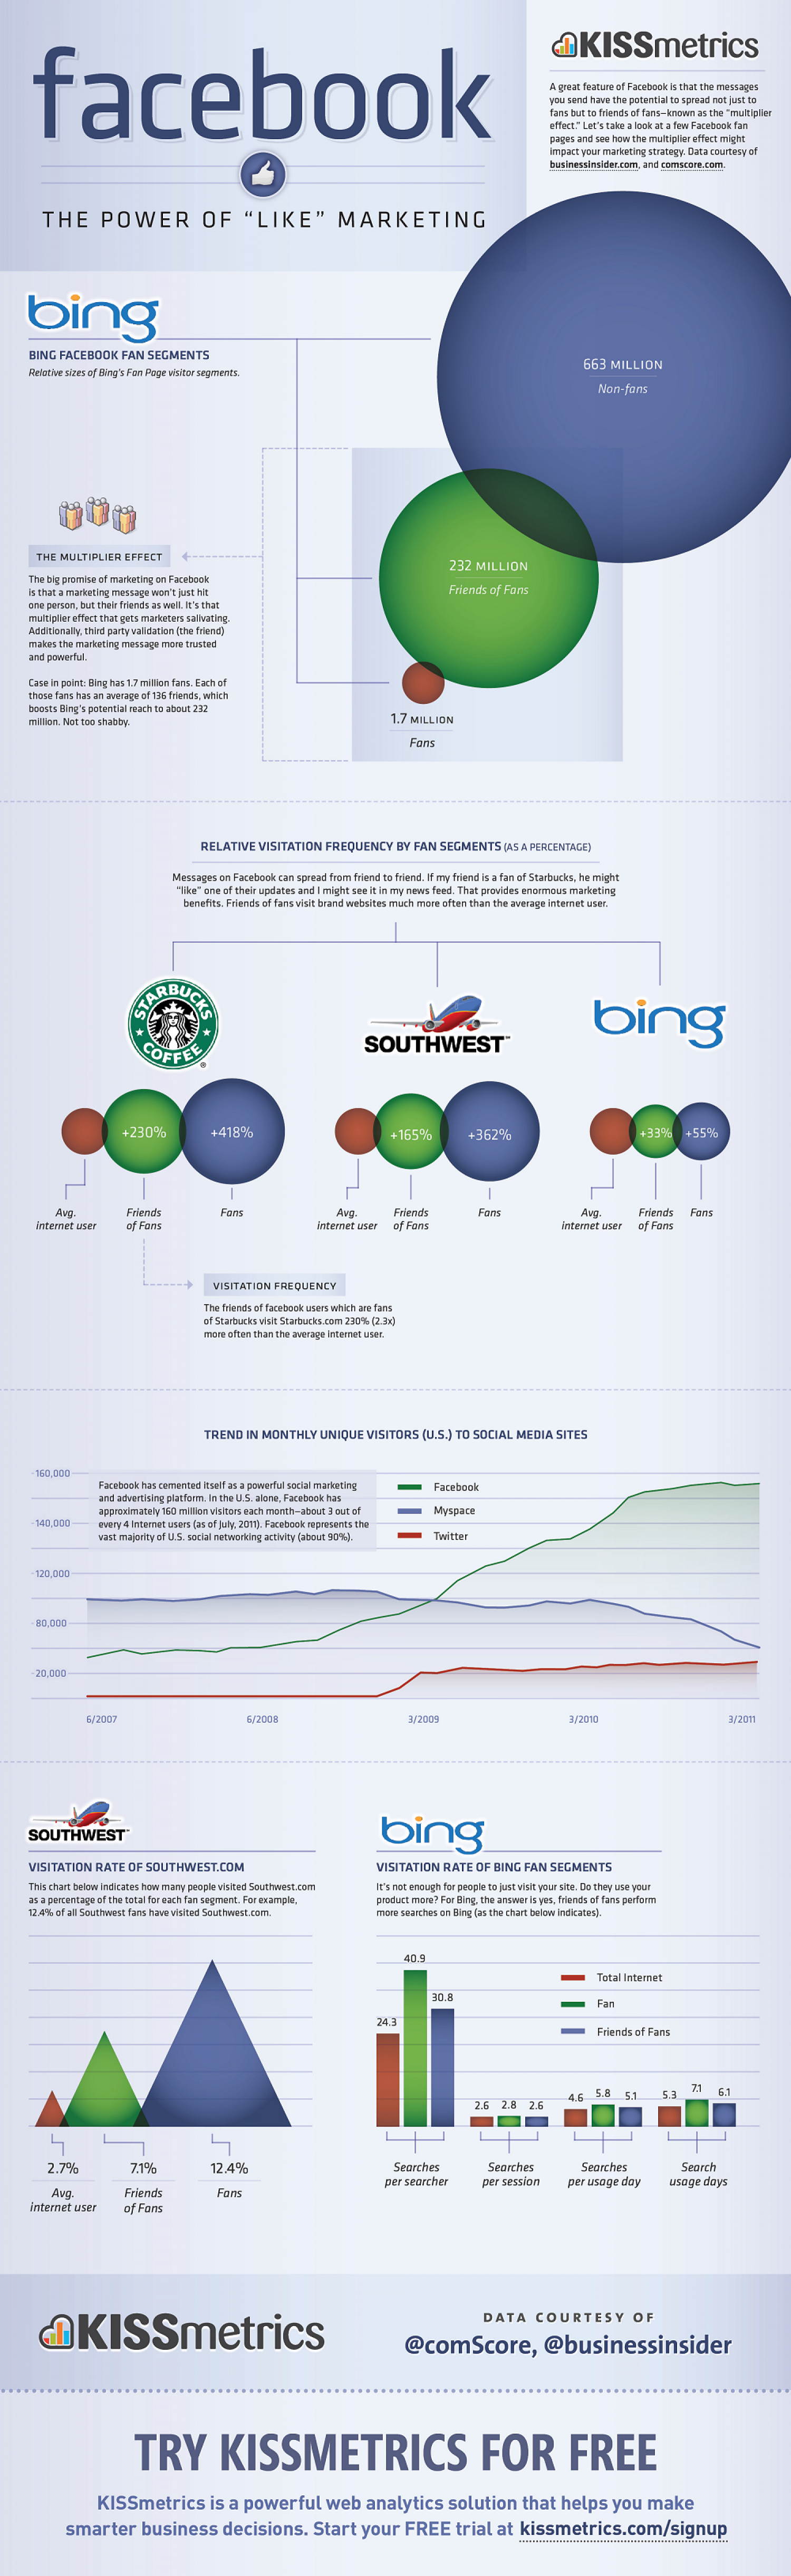 "Facebook: The Power of ""Like"" Marketing Infographic"